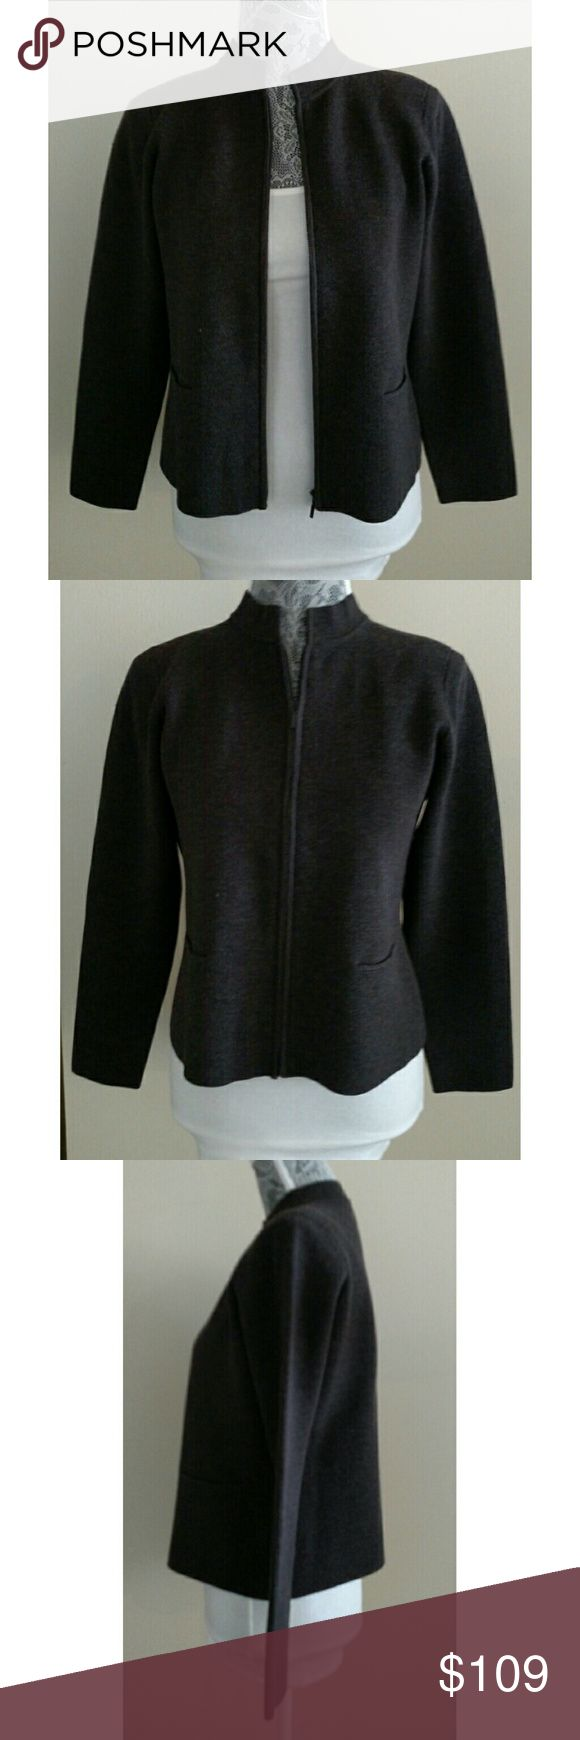 Eileen Fisher Petite Sweater Jacket - Size PM Eileen Fisher Petite Sweater Jacket - Size PM  Wool zip up sweater jacket. Two front pockets. Crewneck.  Unlined.  Excellent used condition  Materials: 100% wool  Hand wash cold  No stains, holes, or other damage Eileen Fisher Sweaters Cardigans